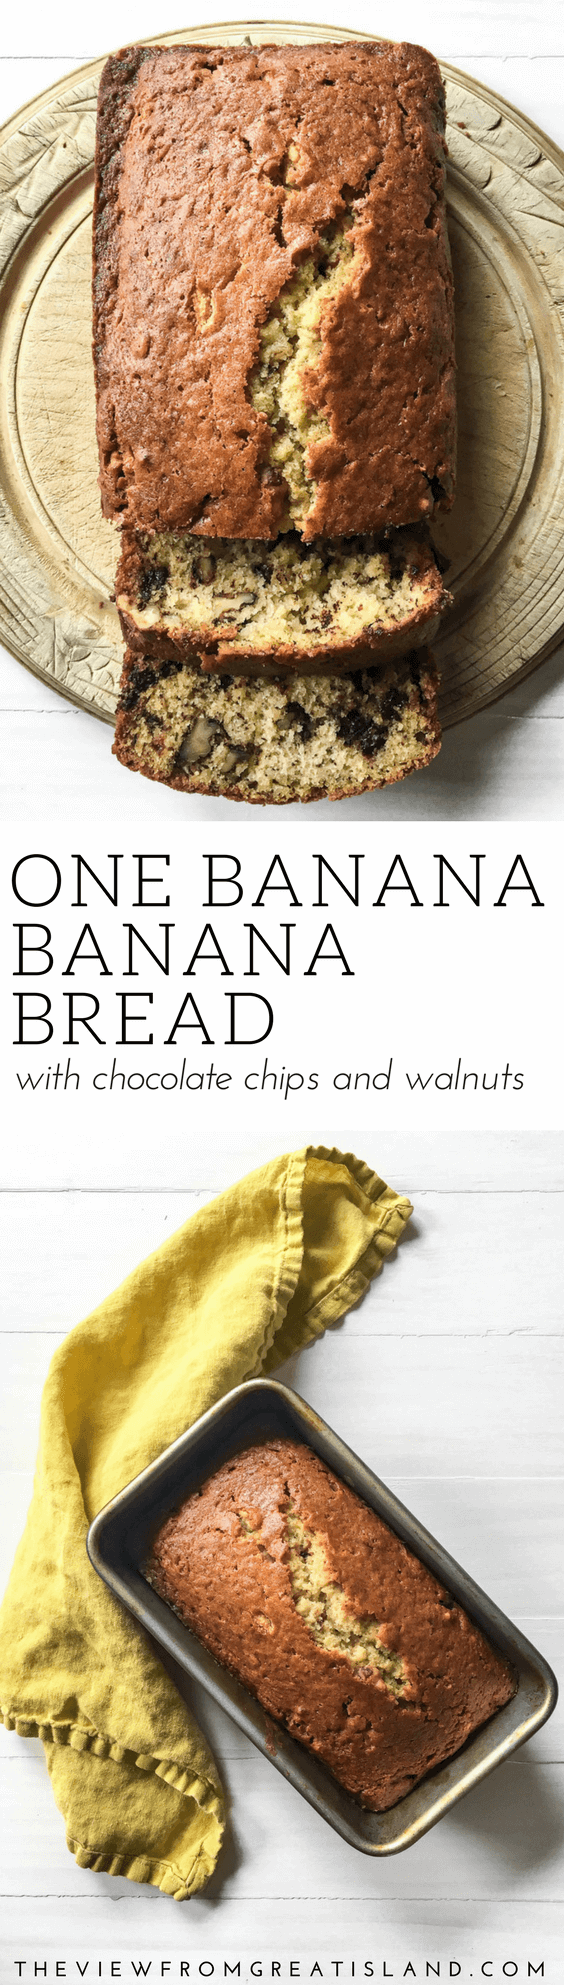 One Banana Banana Bread with Chocolate Chips and Walnuts ~ when there's just one banana left on the counter, this one-banana, one-bowl quick bread recipe steps up to the plate. #bananas #bananabread #chocolatechipbananabread #quickbread #loafcake #bananacake #cake #breakfast #brunch